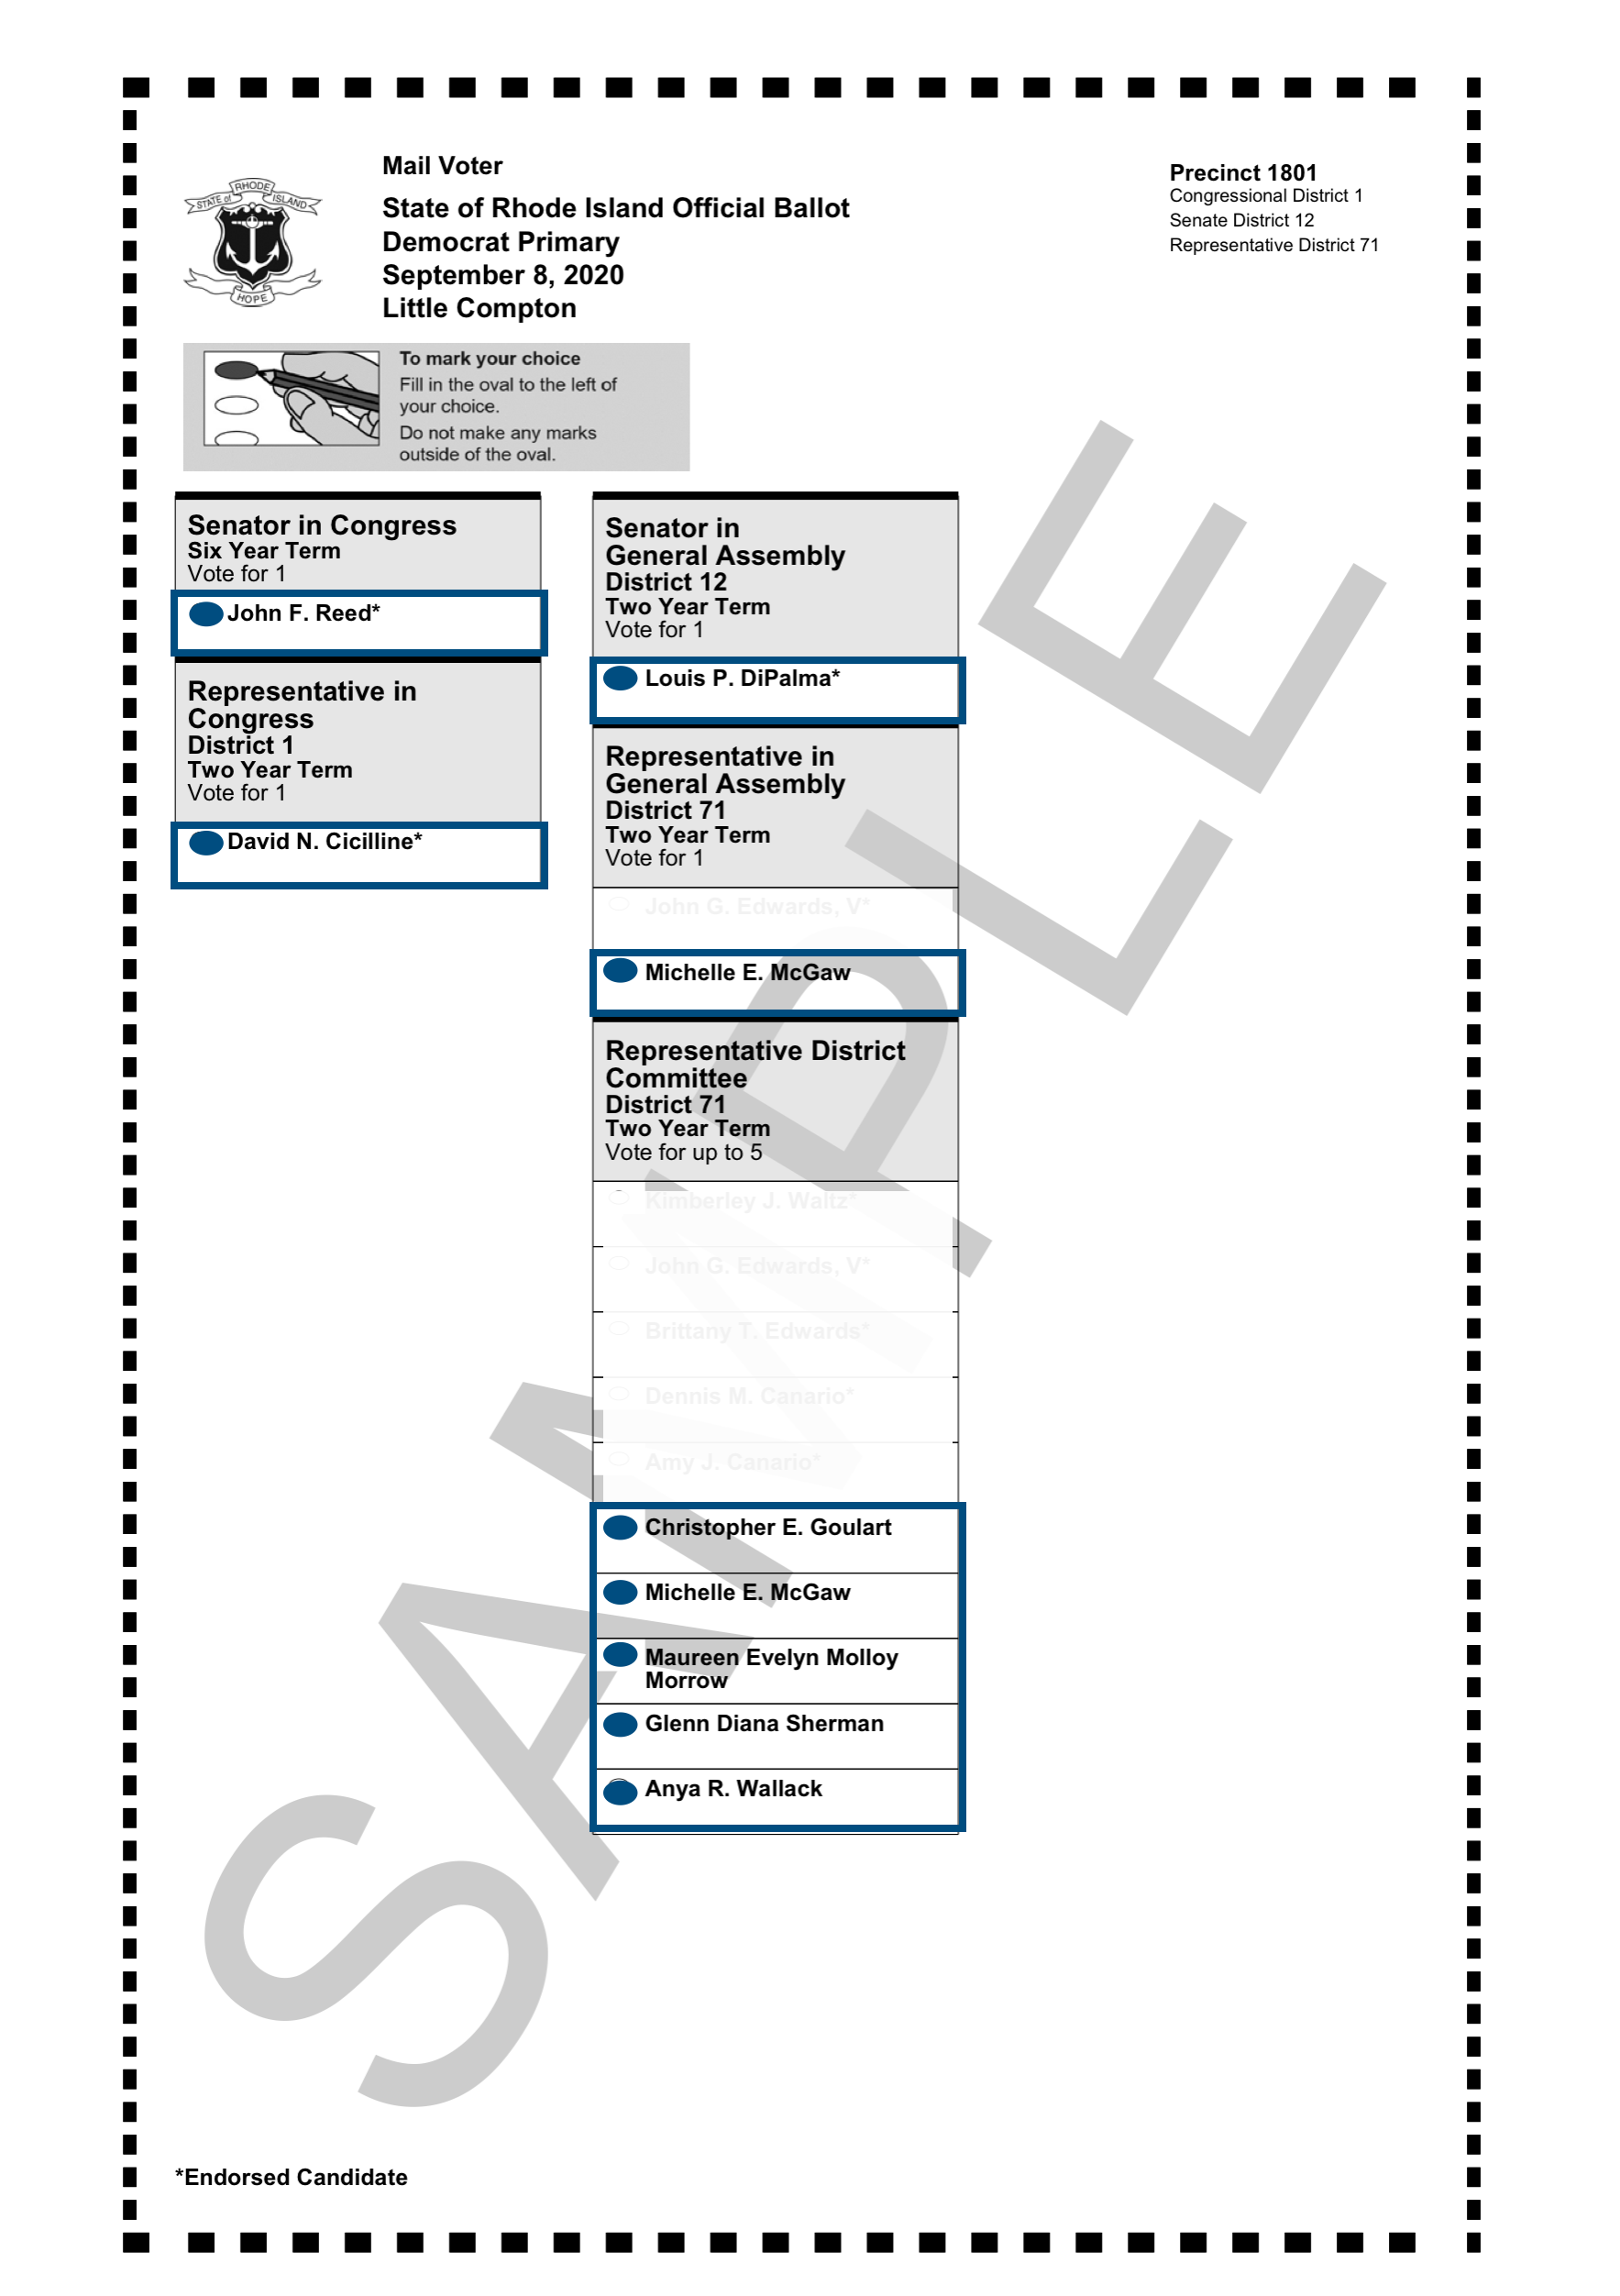 Sample_Ballot_2020_Democratic_Primary.png